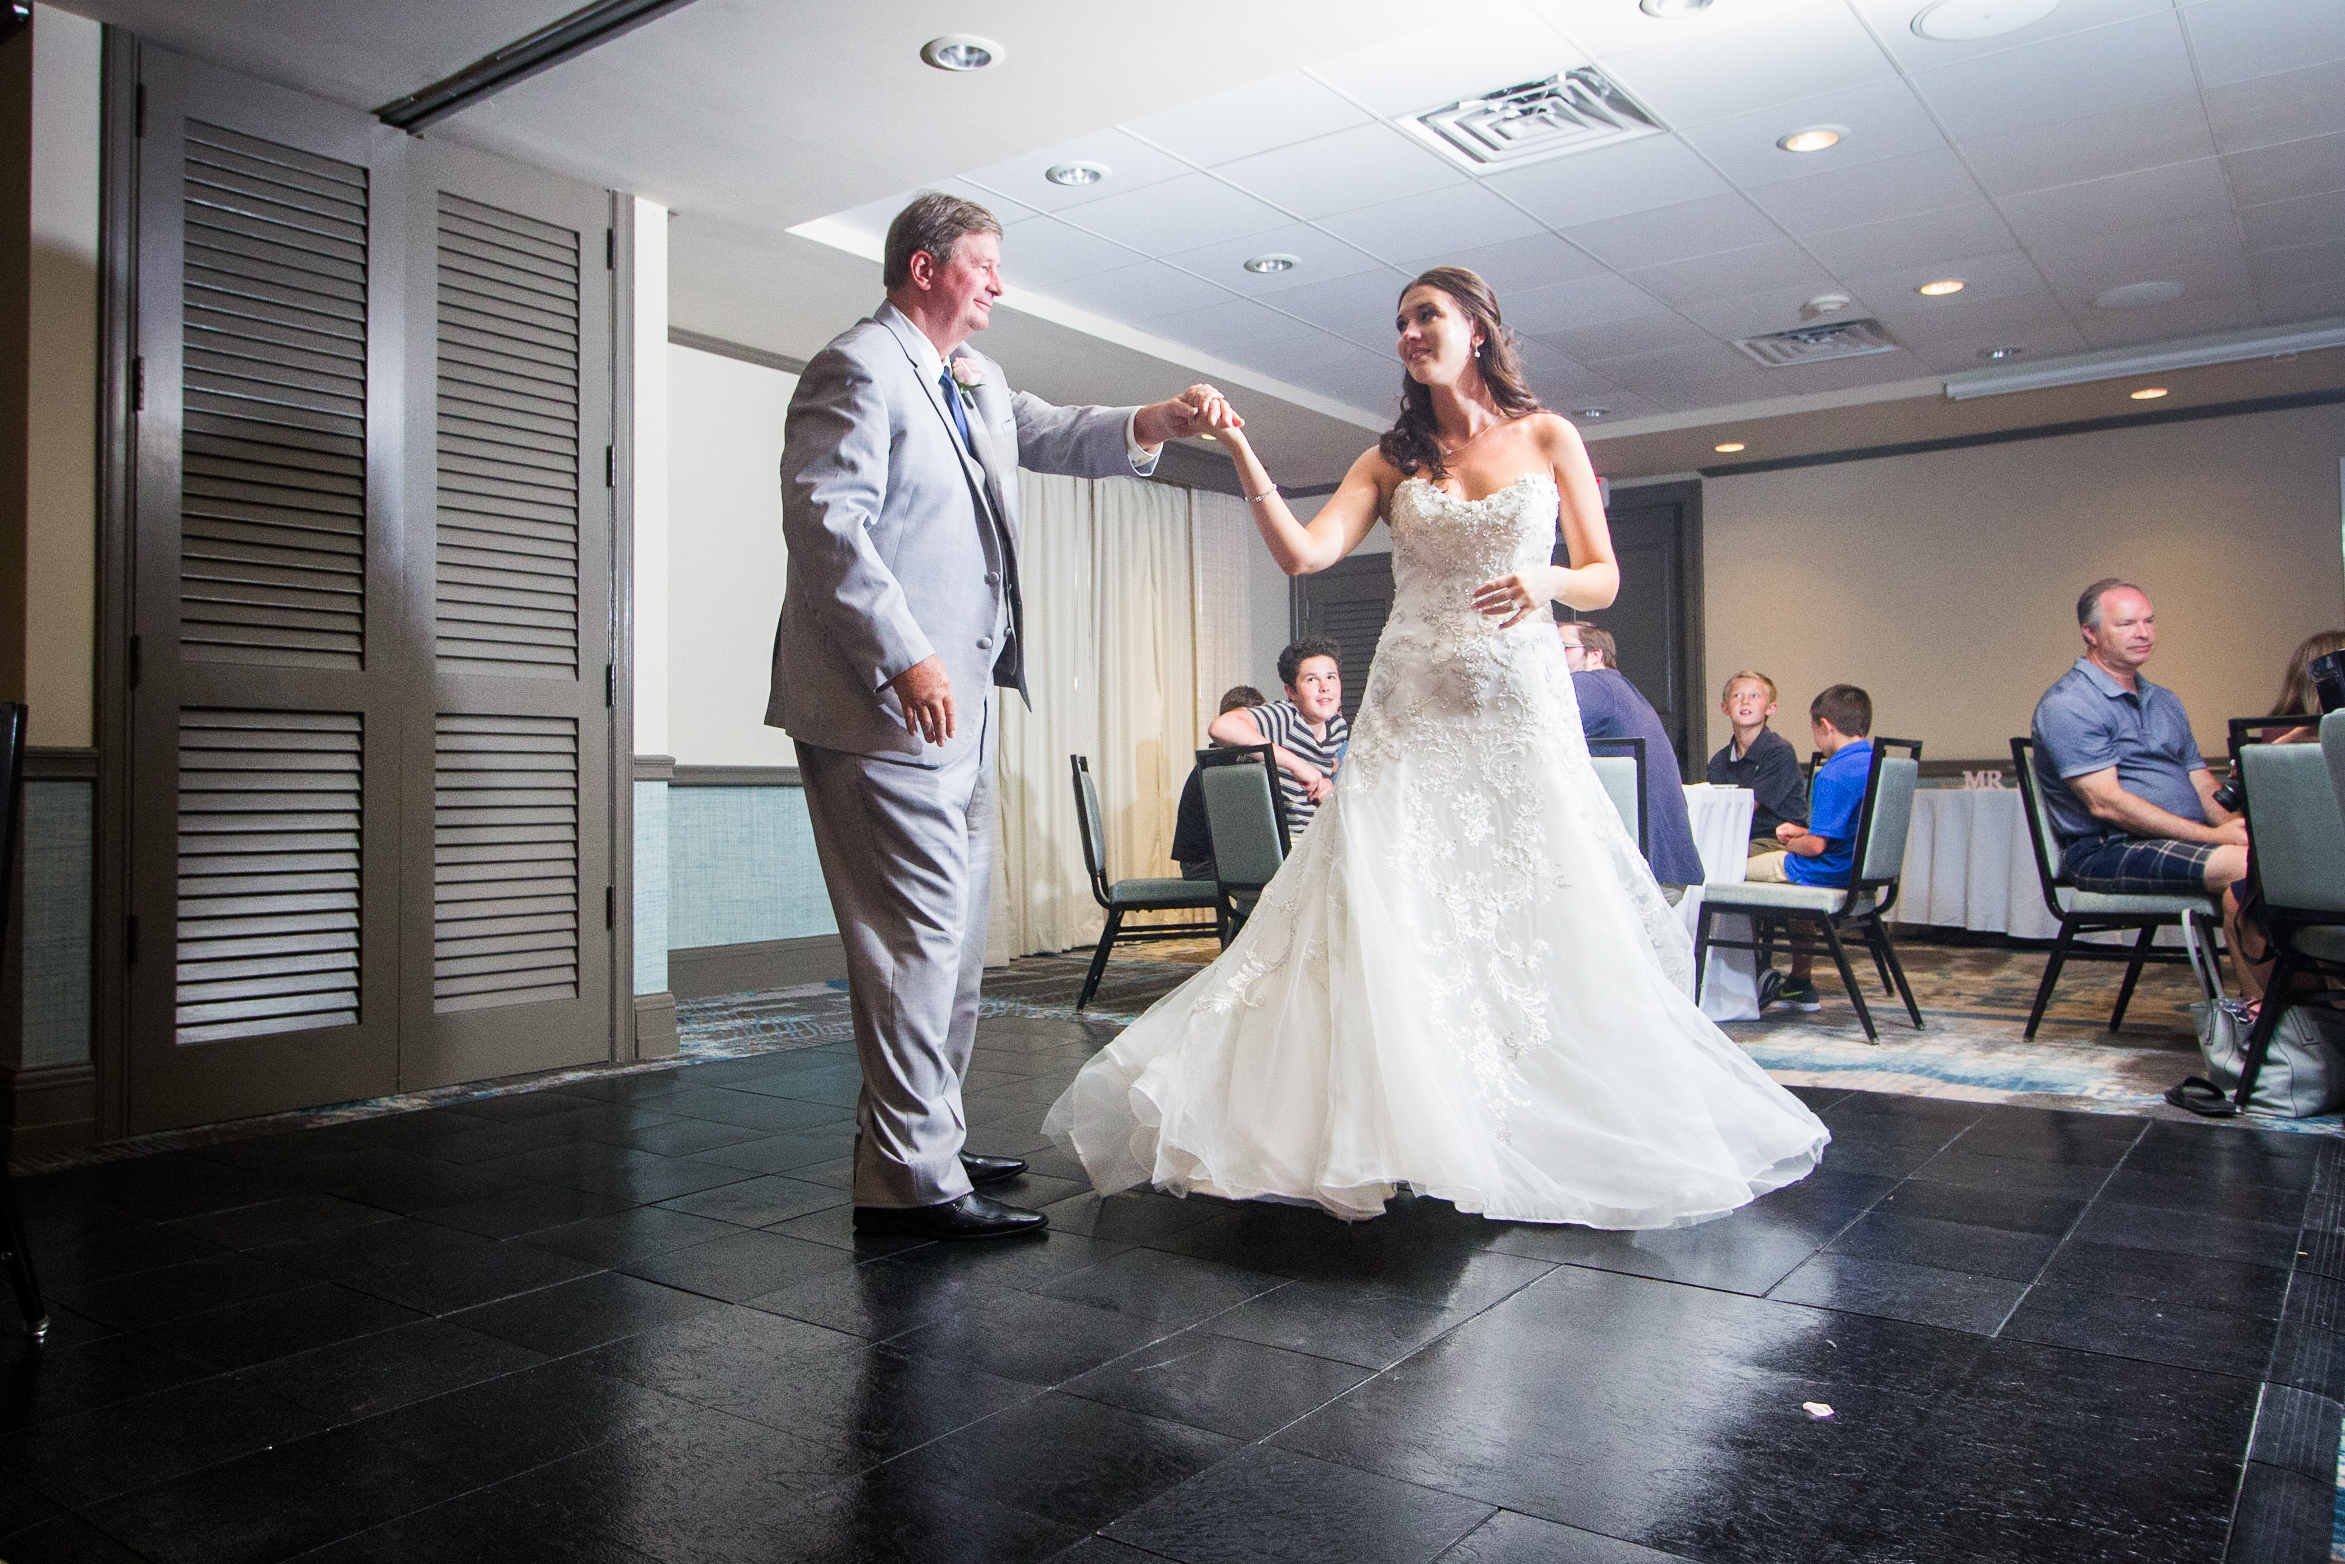 Capturing the closeness of the Bride with her Father as they dance in Pier House Ballroom.